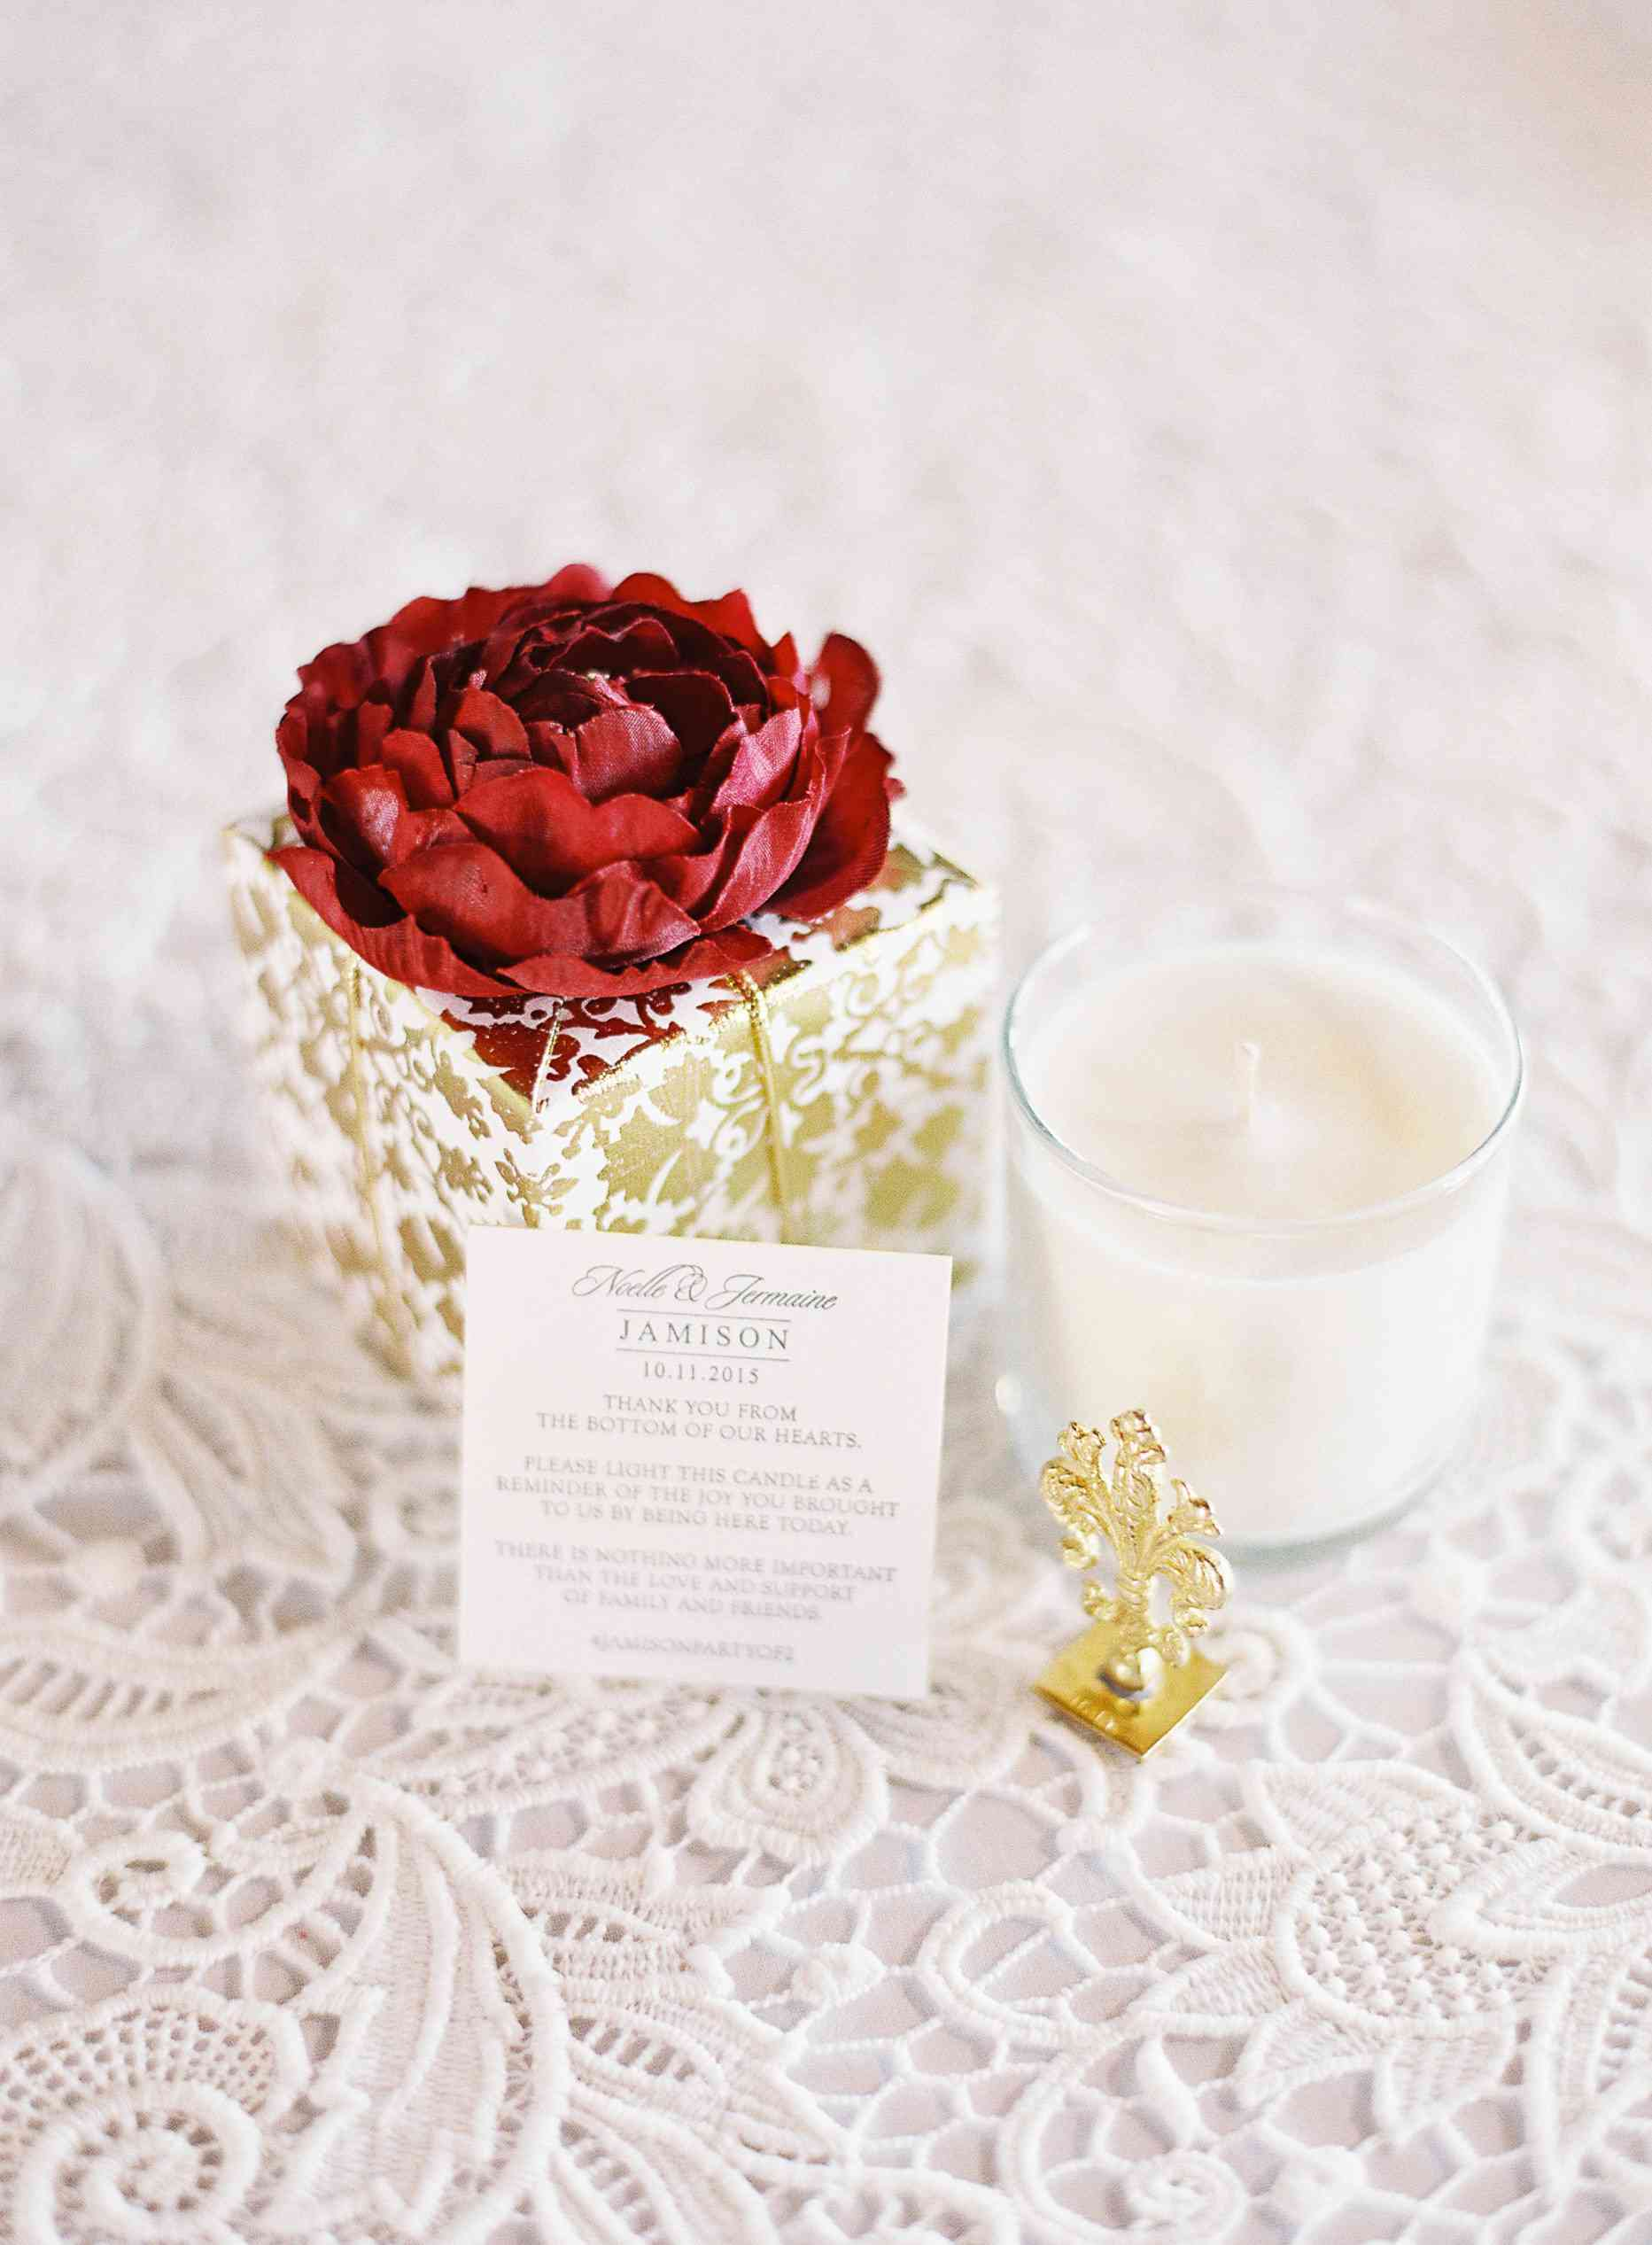 Candle wedding favor with a personalized note